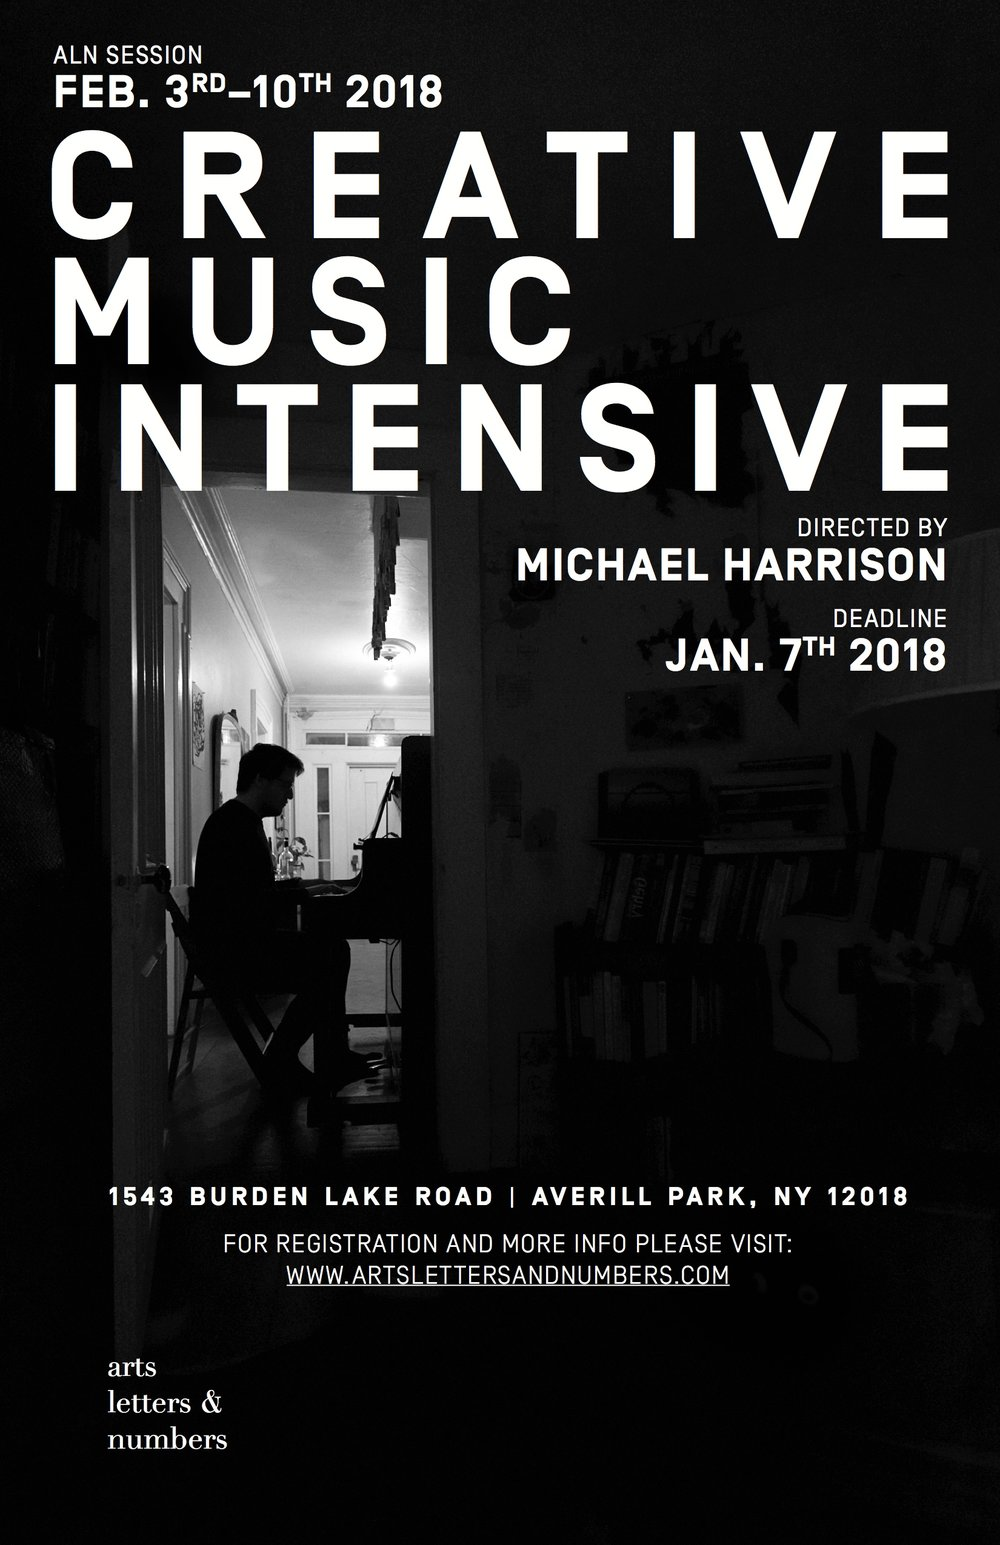 Poster_Michael-Harrison_Creative-Music-Intensive.jpg